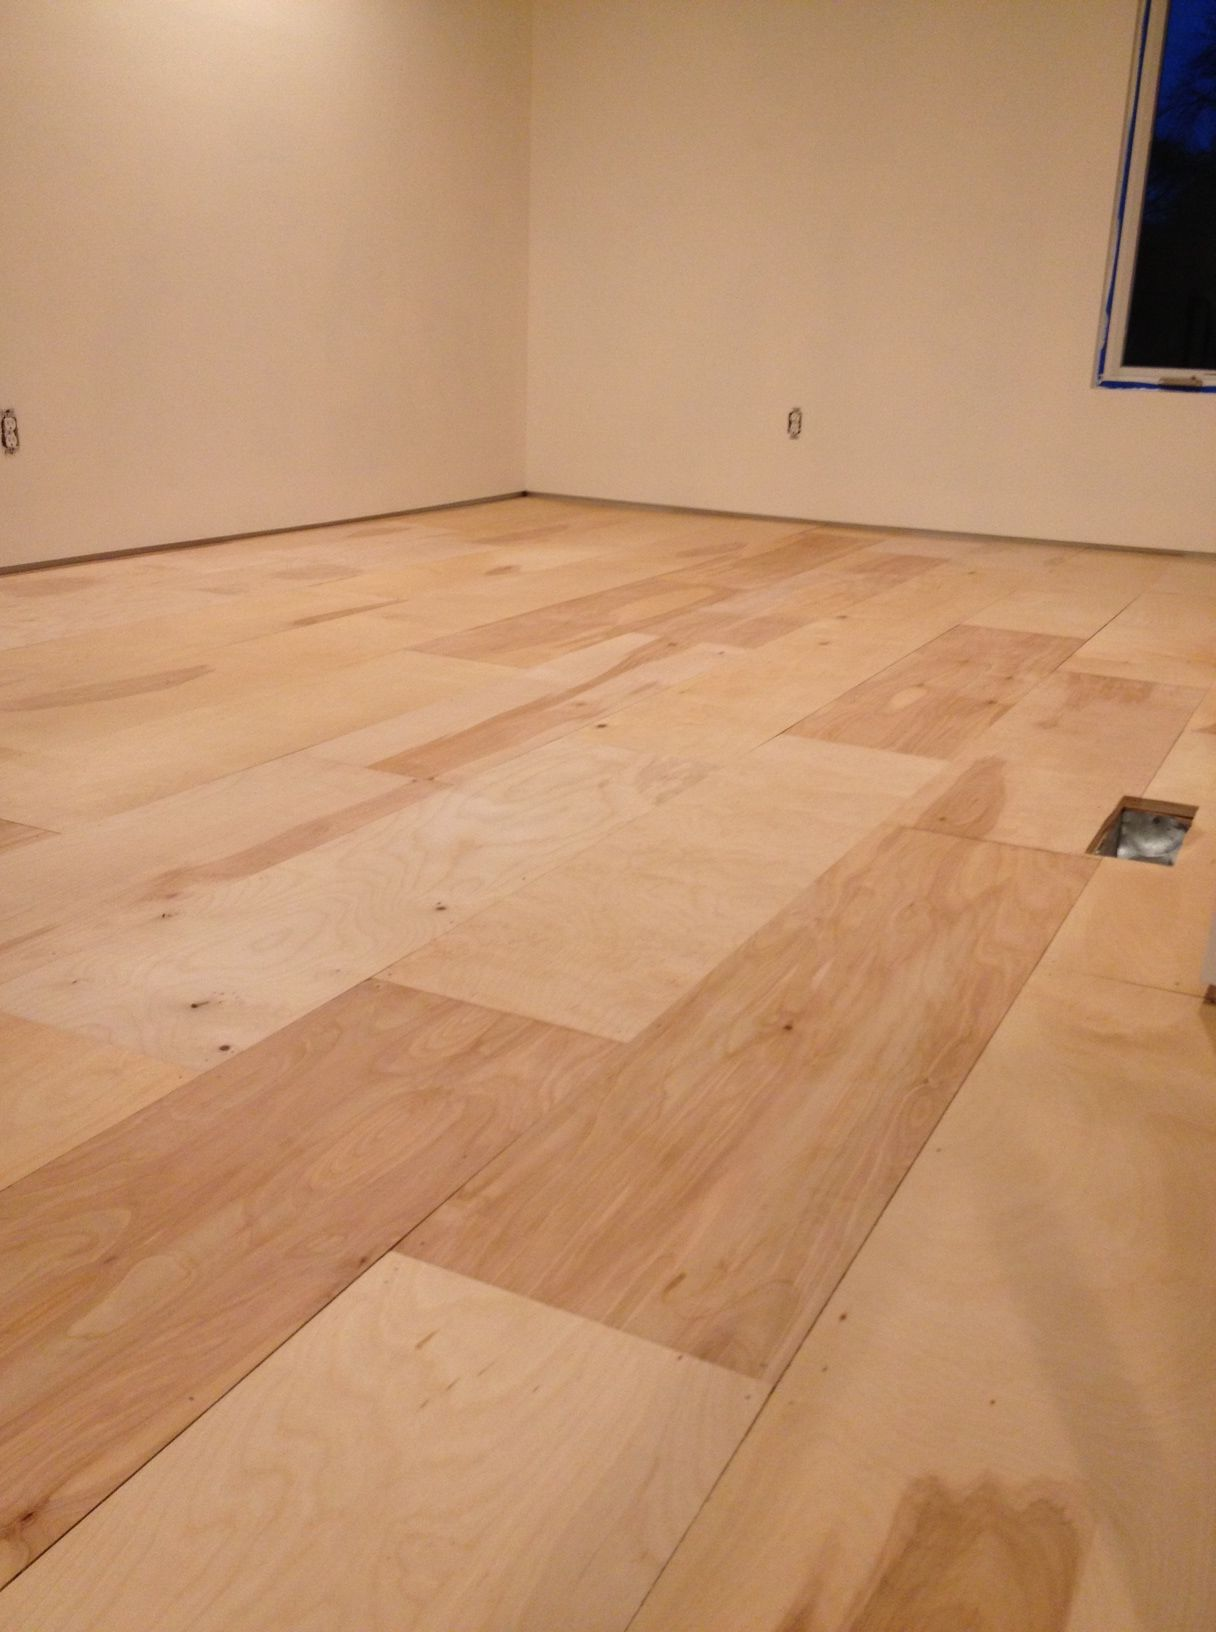 Plywood Sheet Flooring ~ Plywood sheet flooring imgkid the image kid